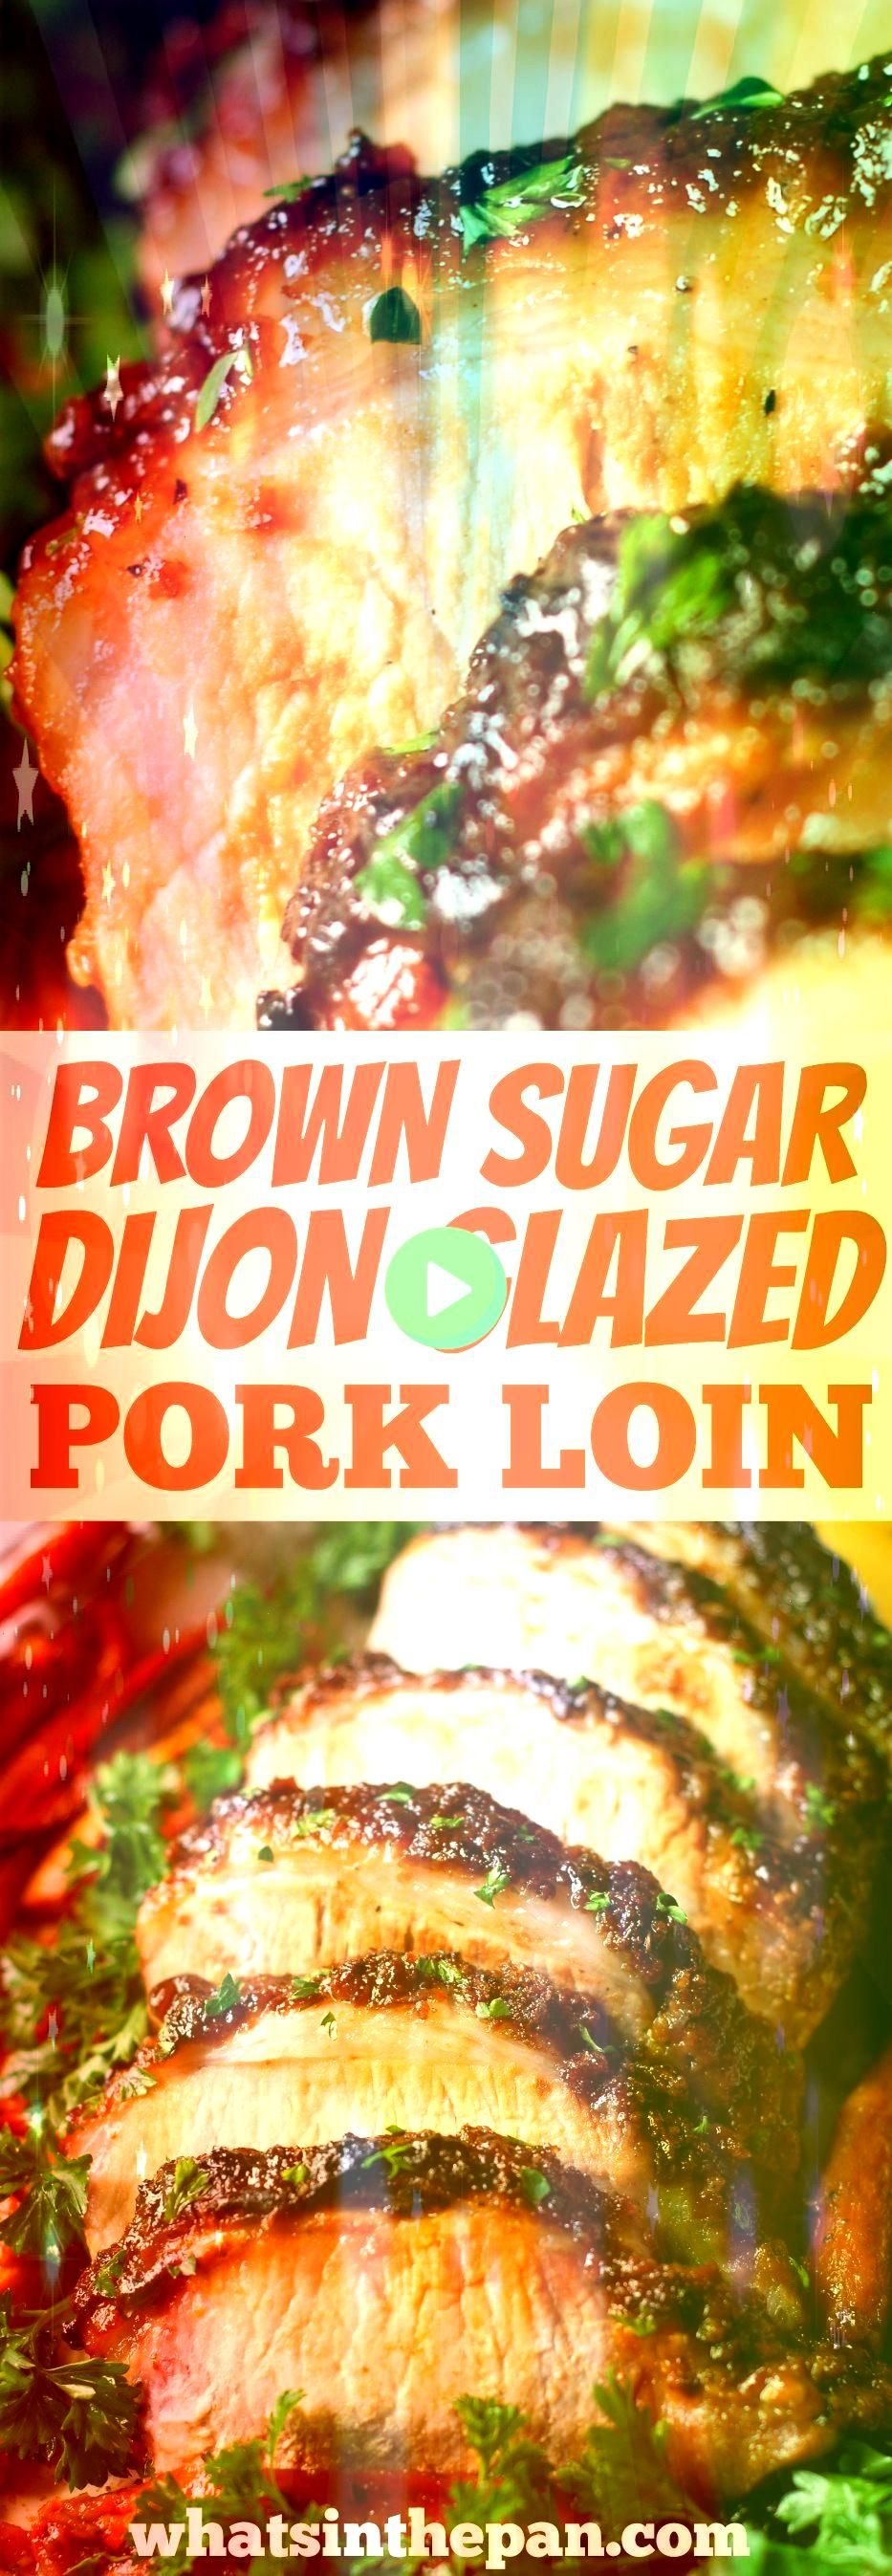 Sugar Dijon Glazed Pork Loin Brown Sugar Dijon Glazed Pork Loin is juicy on the inside and crusty on the outside We roasted our pork together with carrots and sweet potat...